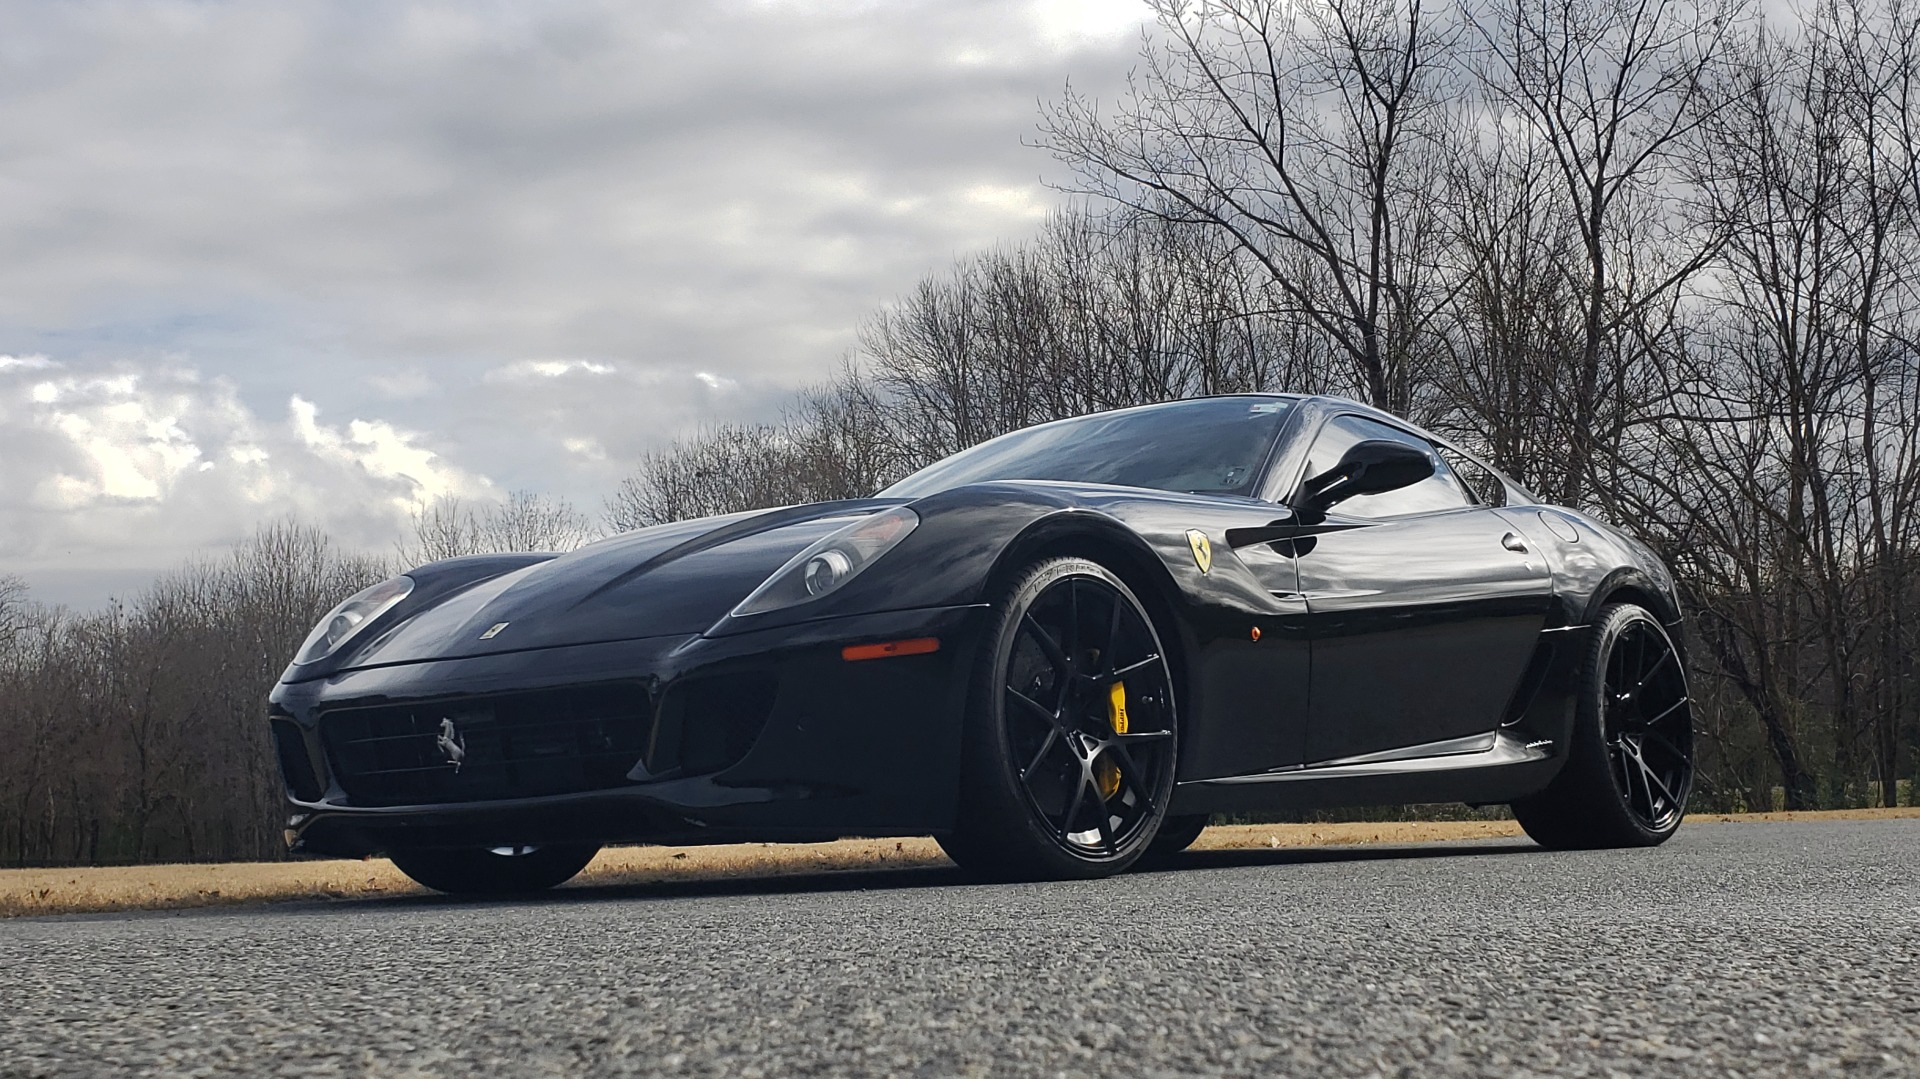 Used 2007 Ferrari 599 GTB FIORANO HGTE / V12 / F1 TRANS / NAV / BOSE / CUSTOM WHEELS for sale Sold at Formula Imports in Charlotte NC 28227 5